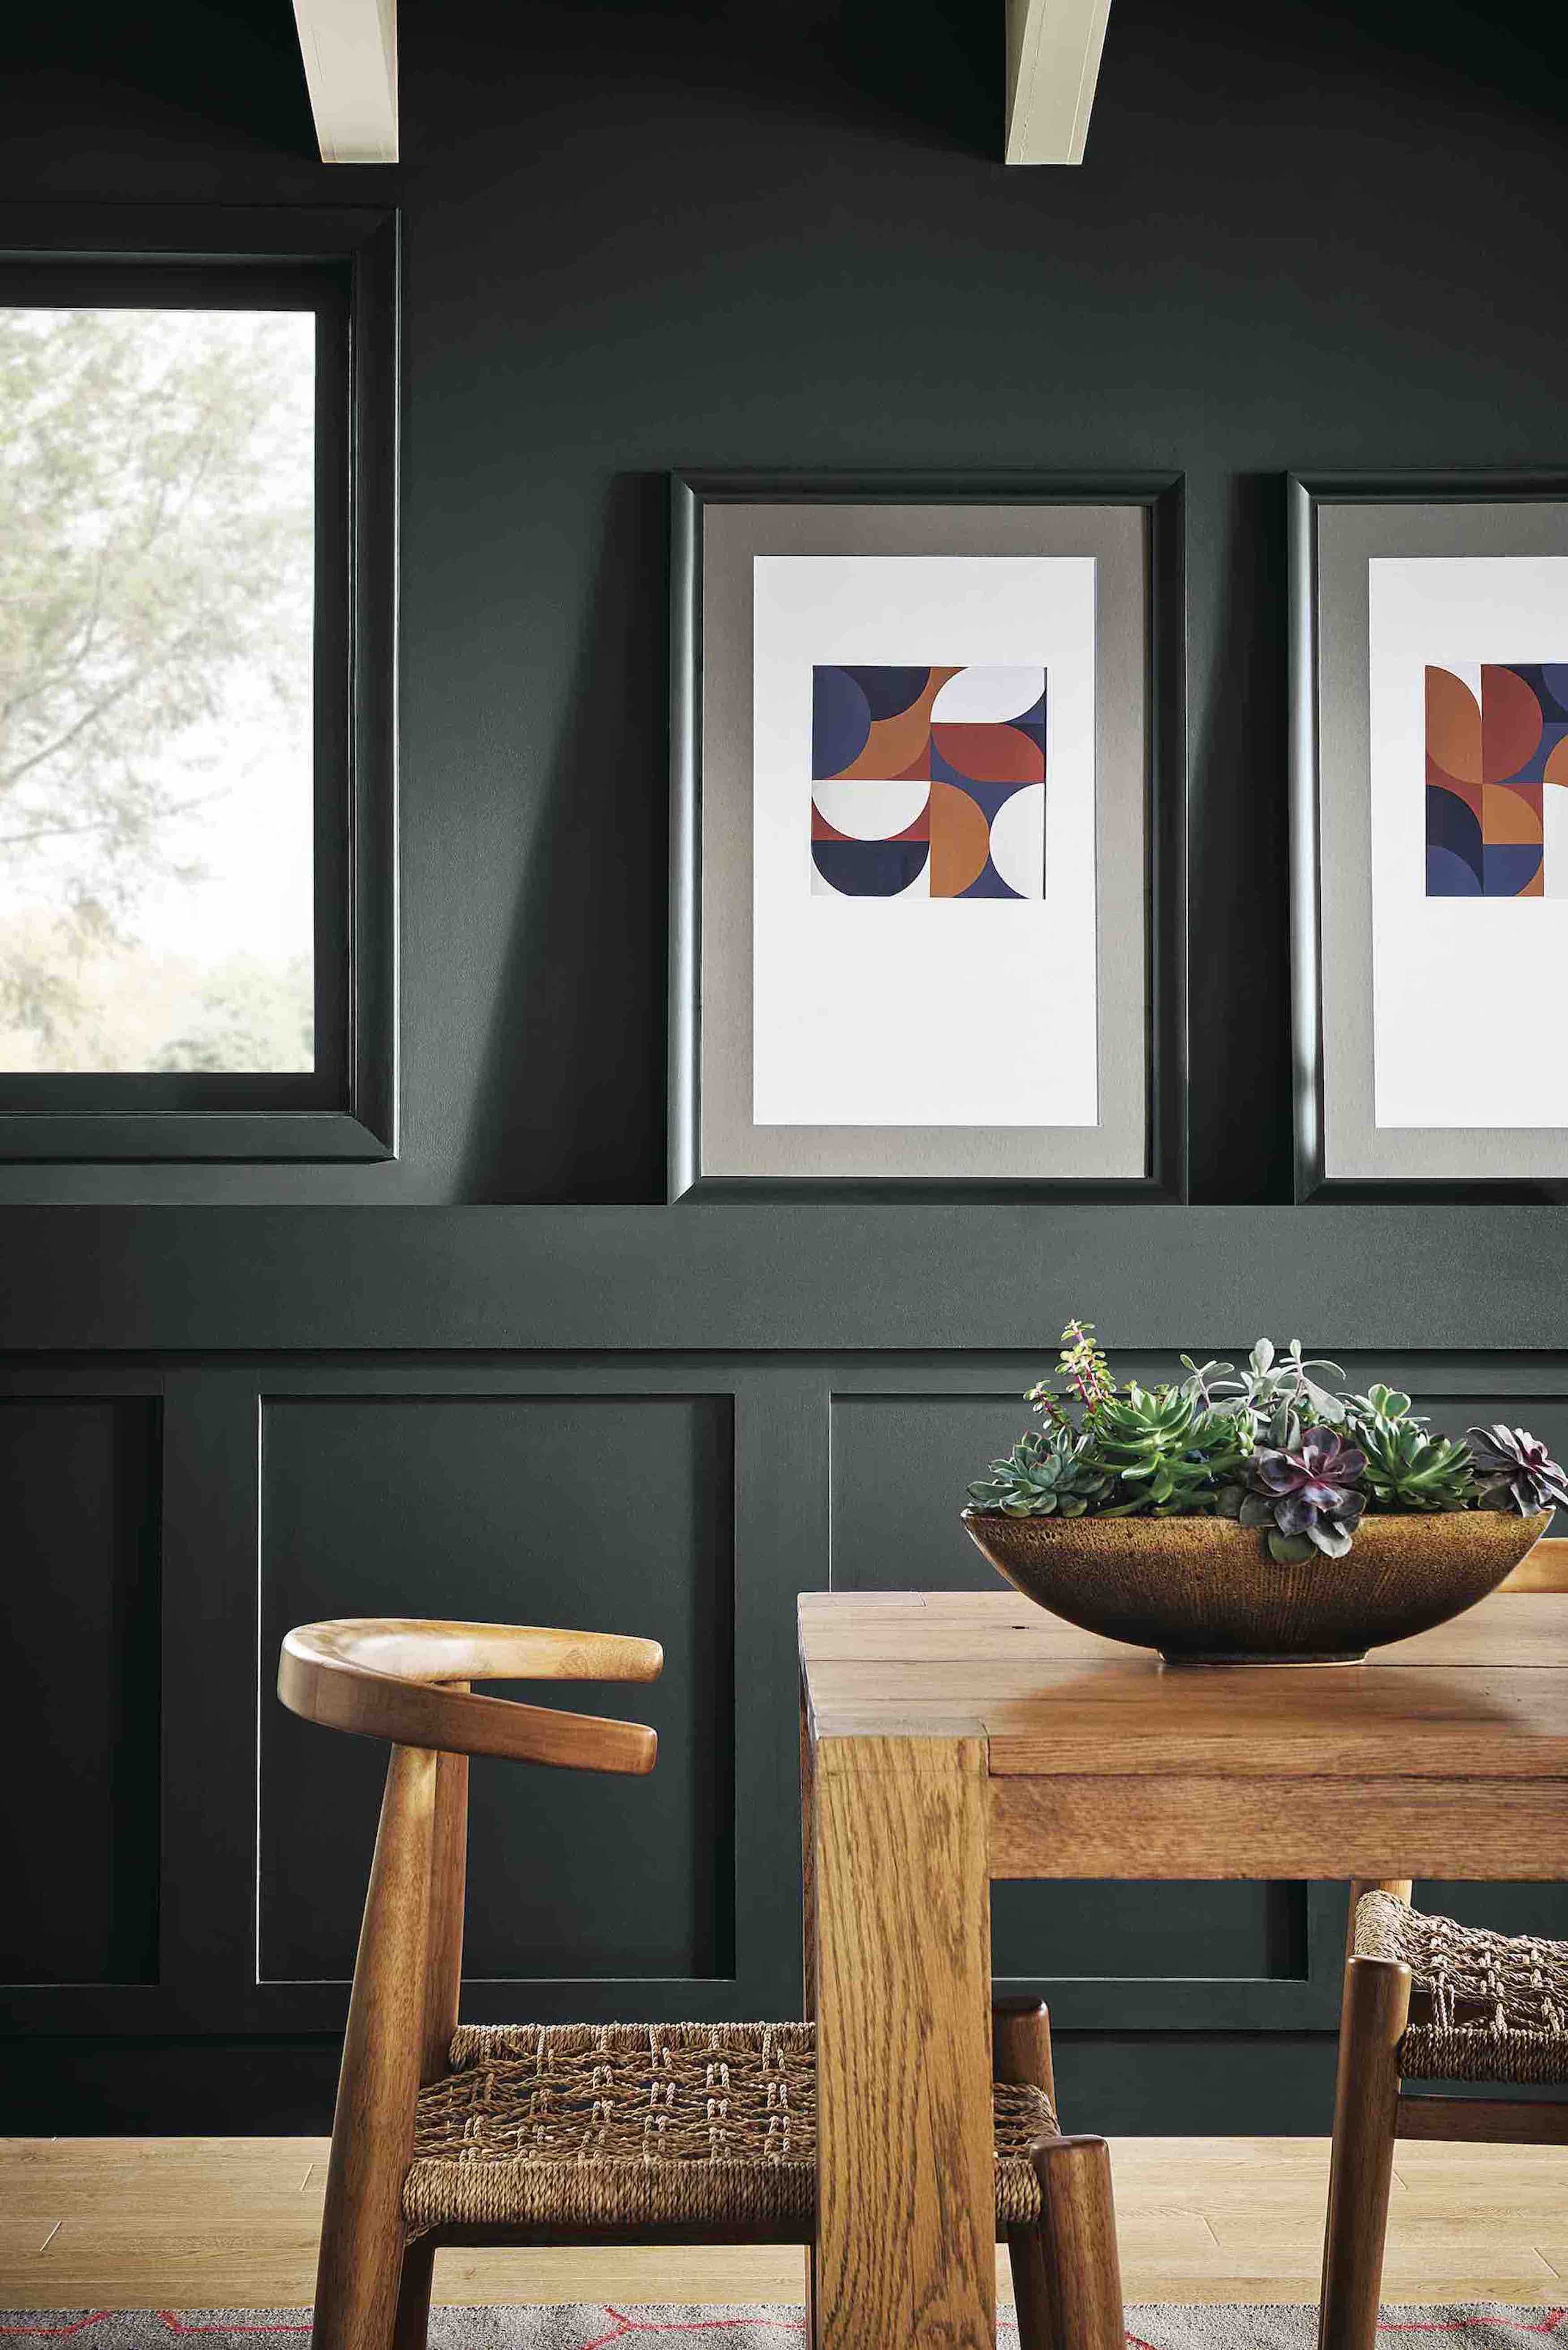 The Best Paint Colors for Your Space, Based on Your Personality